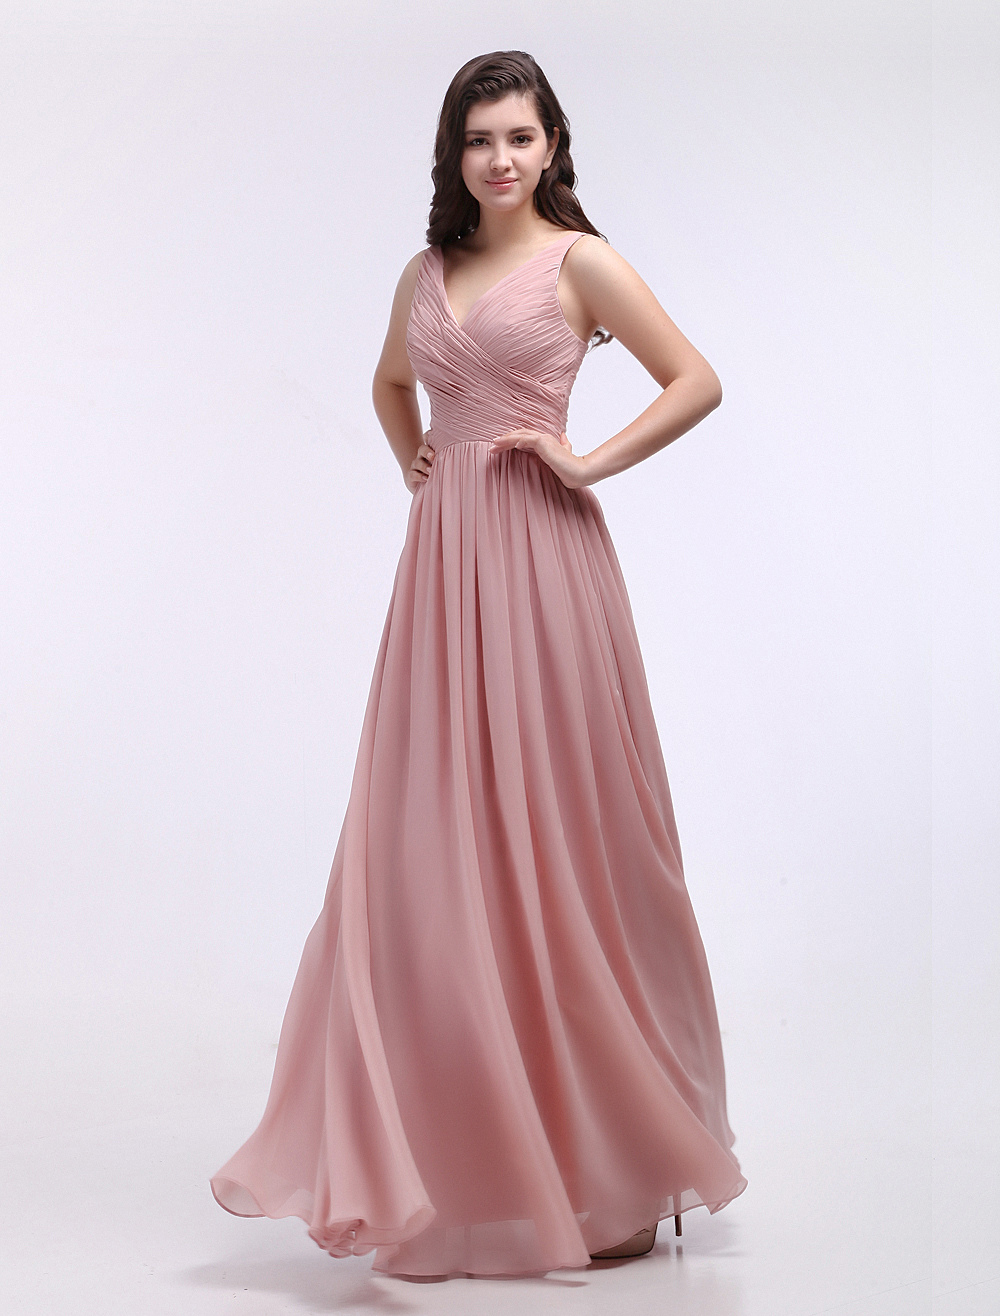 Dusty Pink Bridesmaid Dresses V Neck Ruched Chiffon Nude Grace Bridesmaid Dress